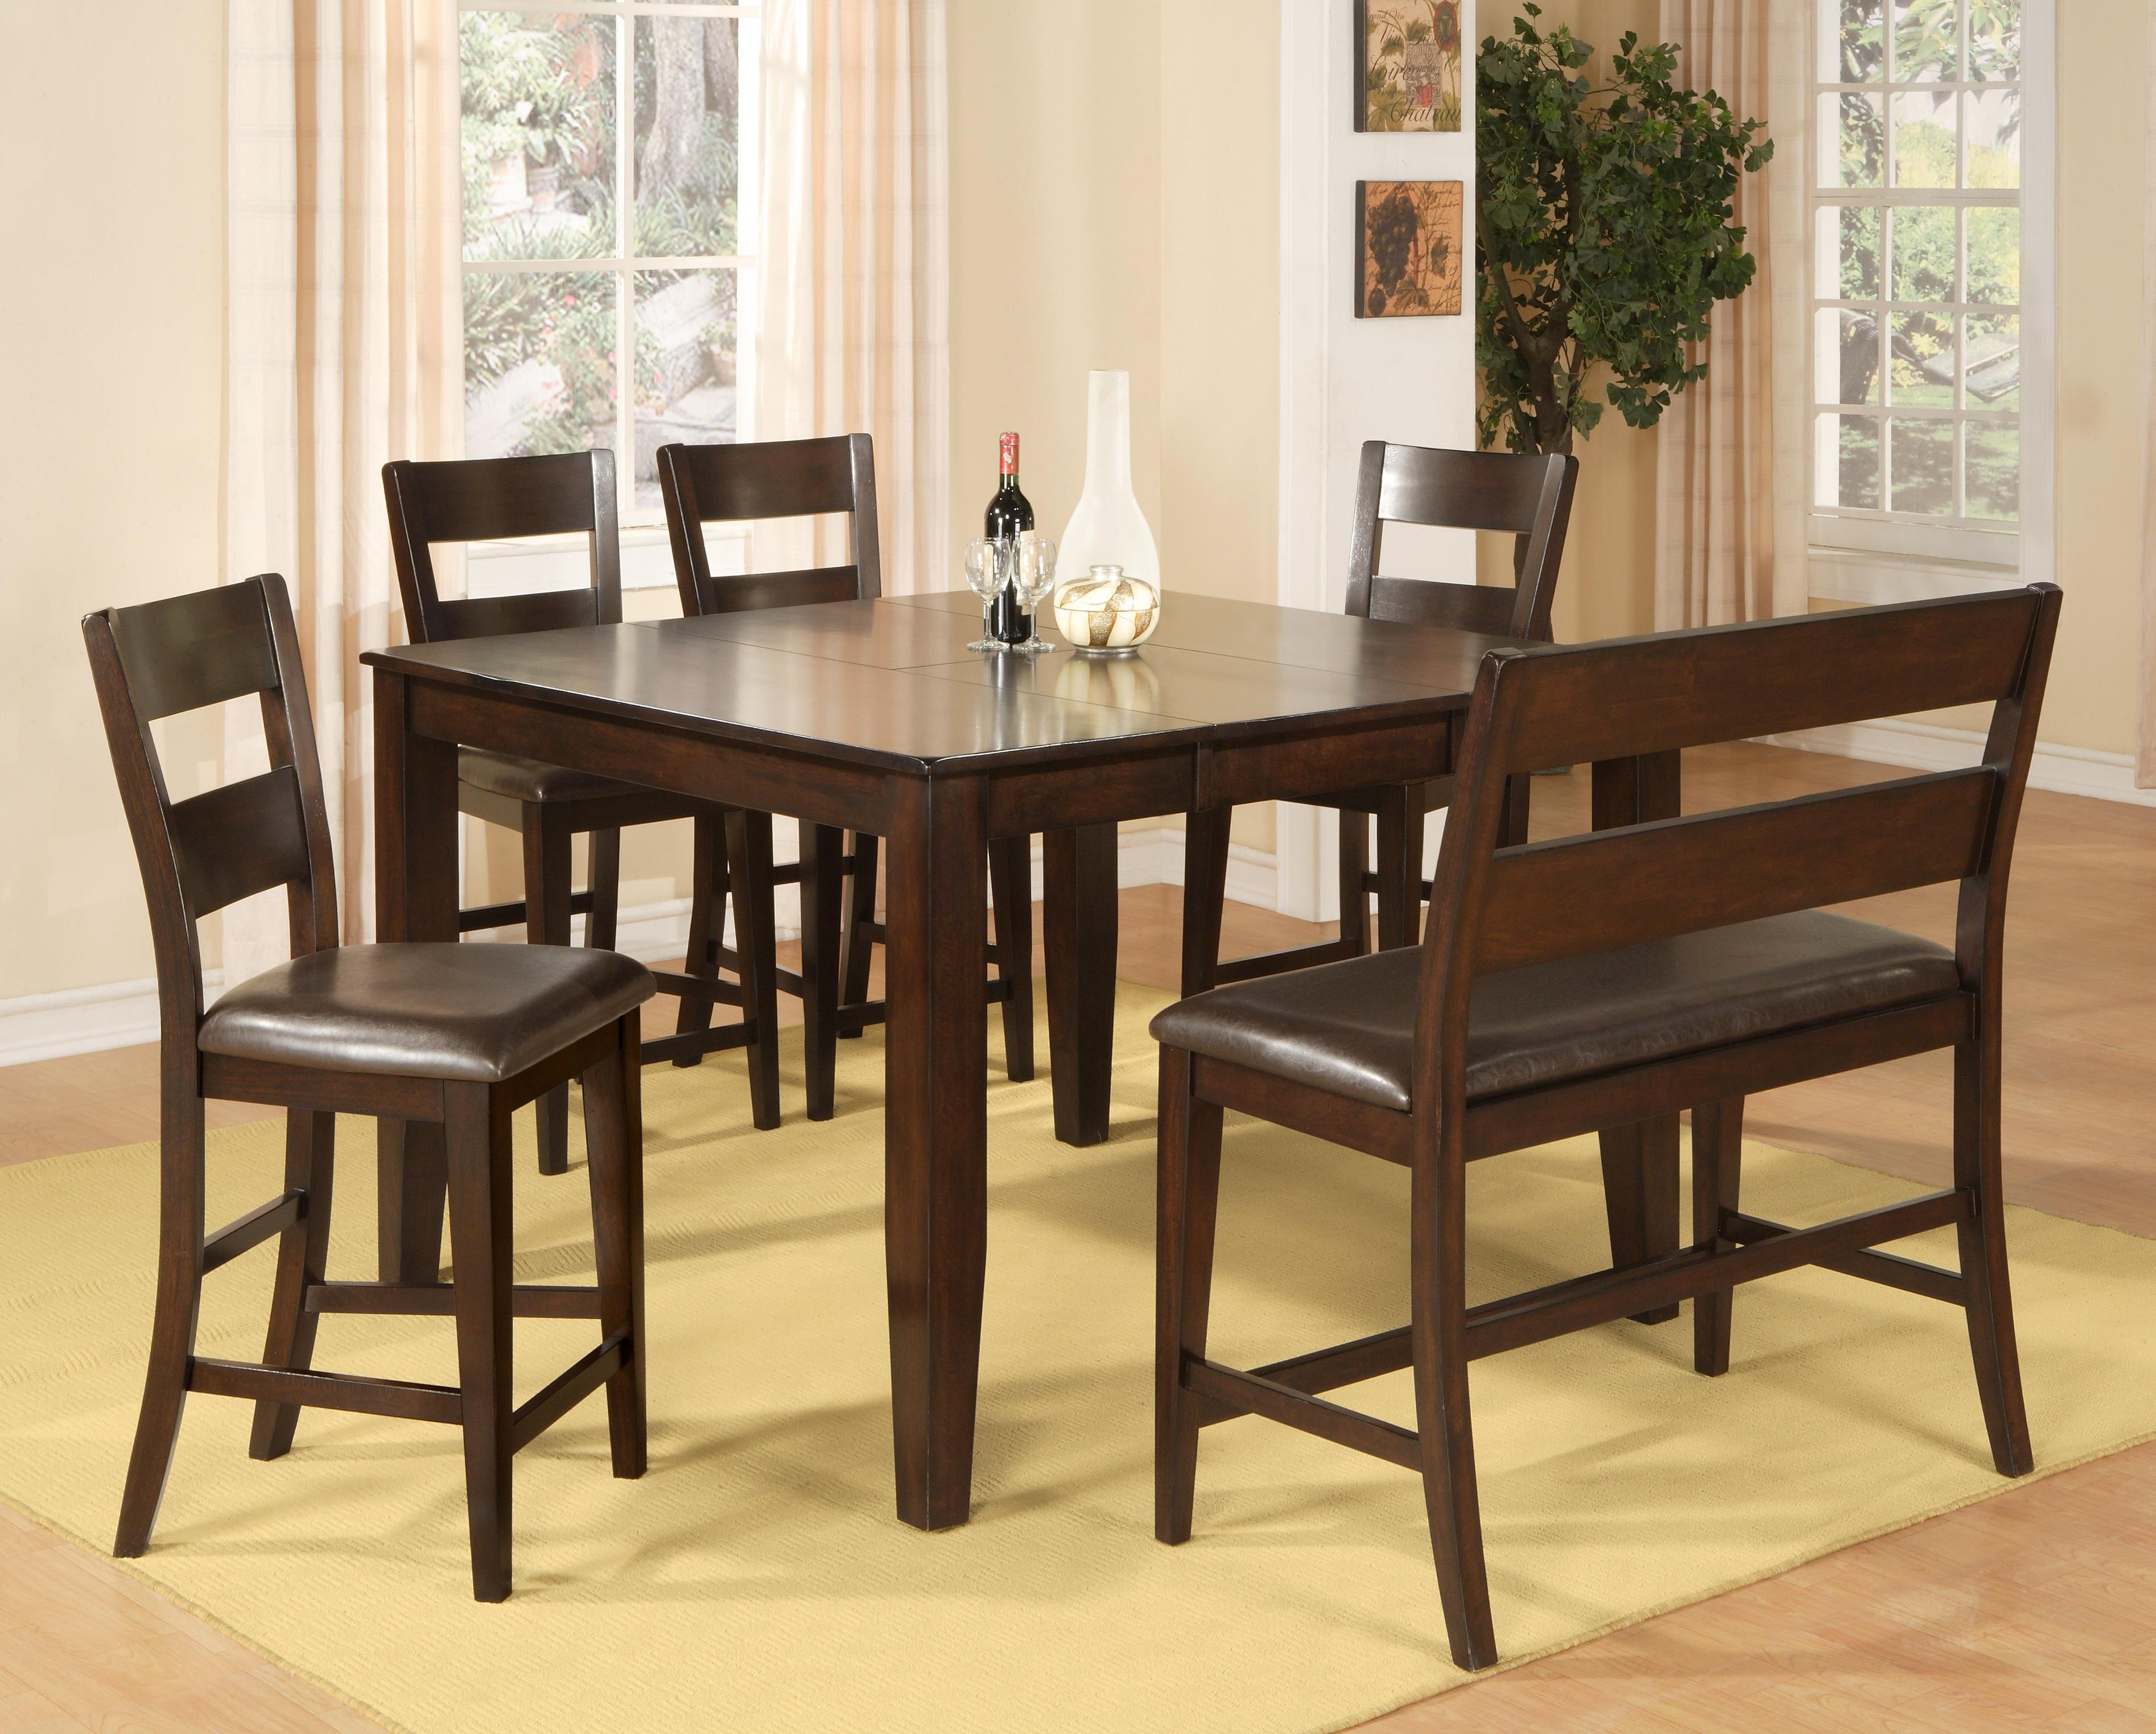 Holland House Bend 6 Piece Pub Table Dining Set   Item Number: 1289 TPB5454